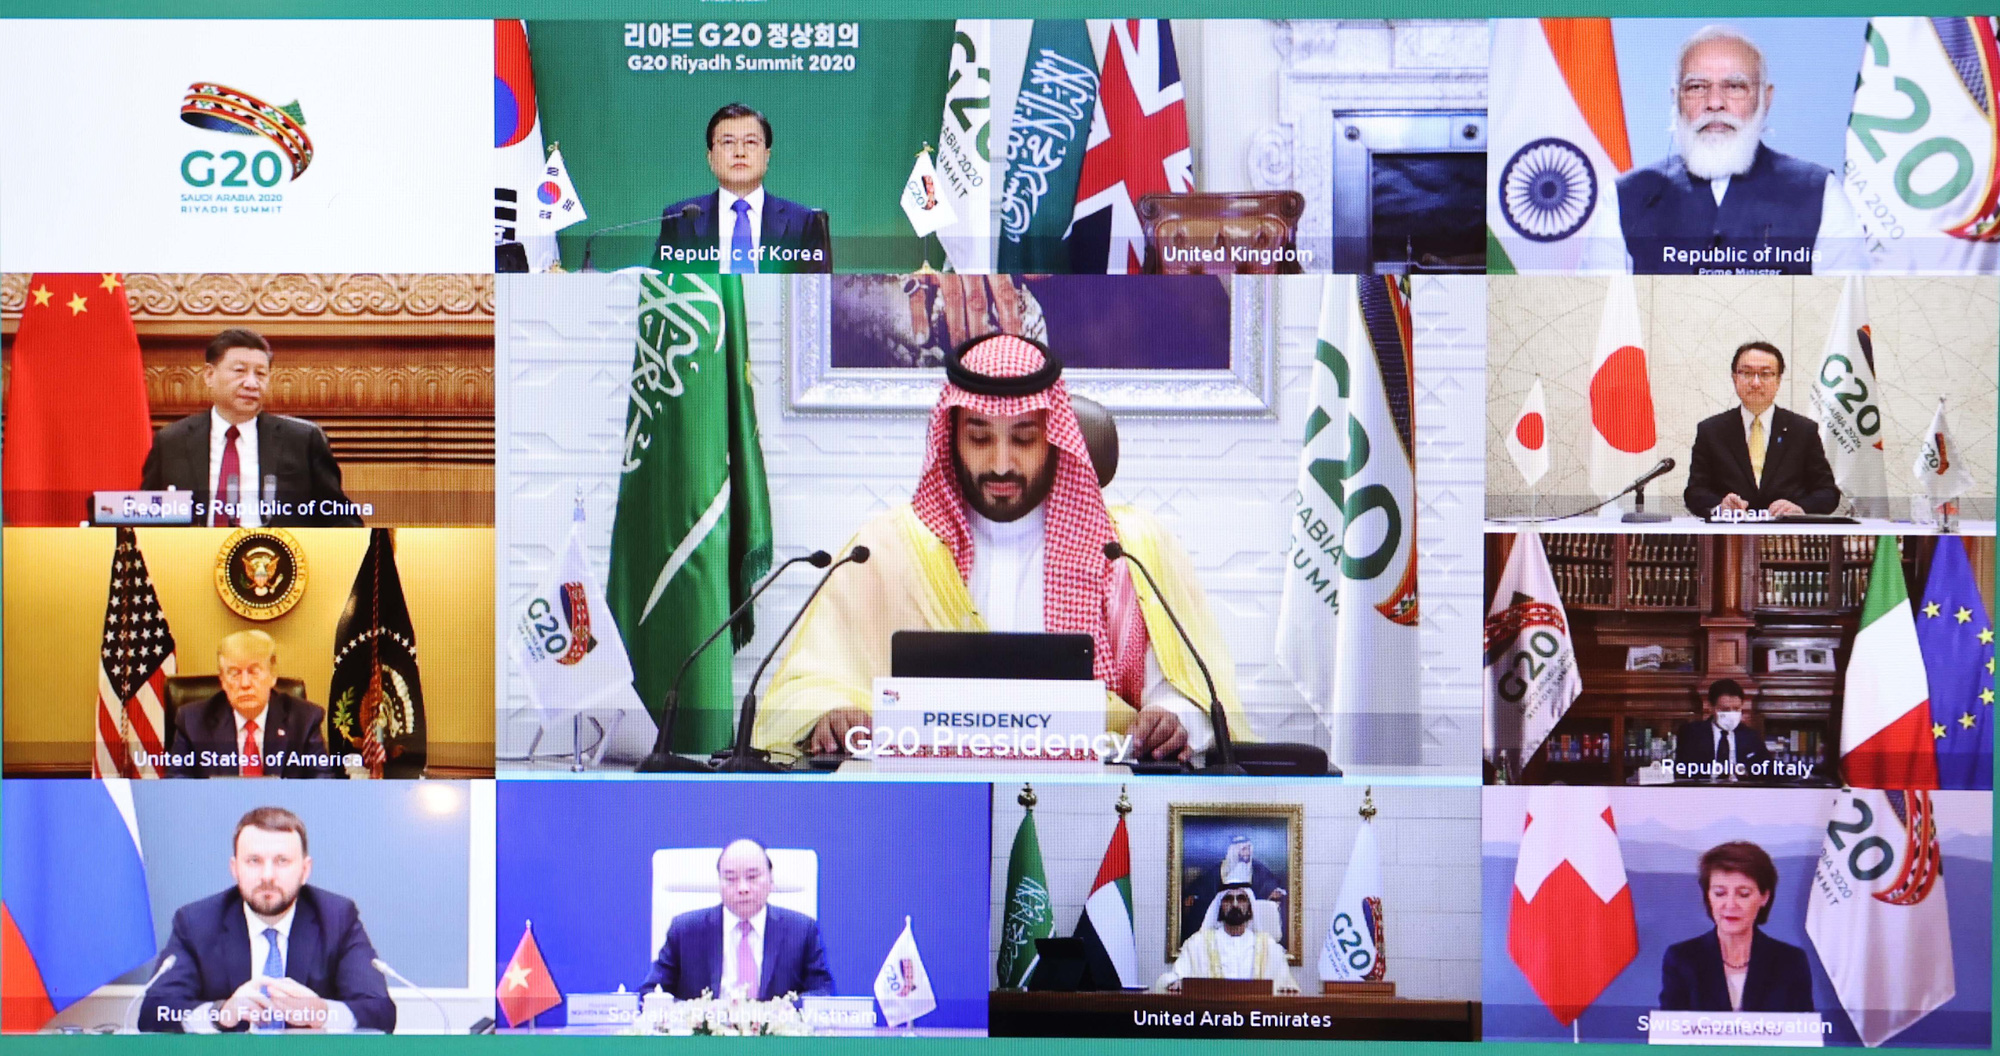 Leaders of G20 member countries attend the second session of the G20 Leaders' Summit on November 22, 2020. Photo: Ministry of Foreign Affairs